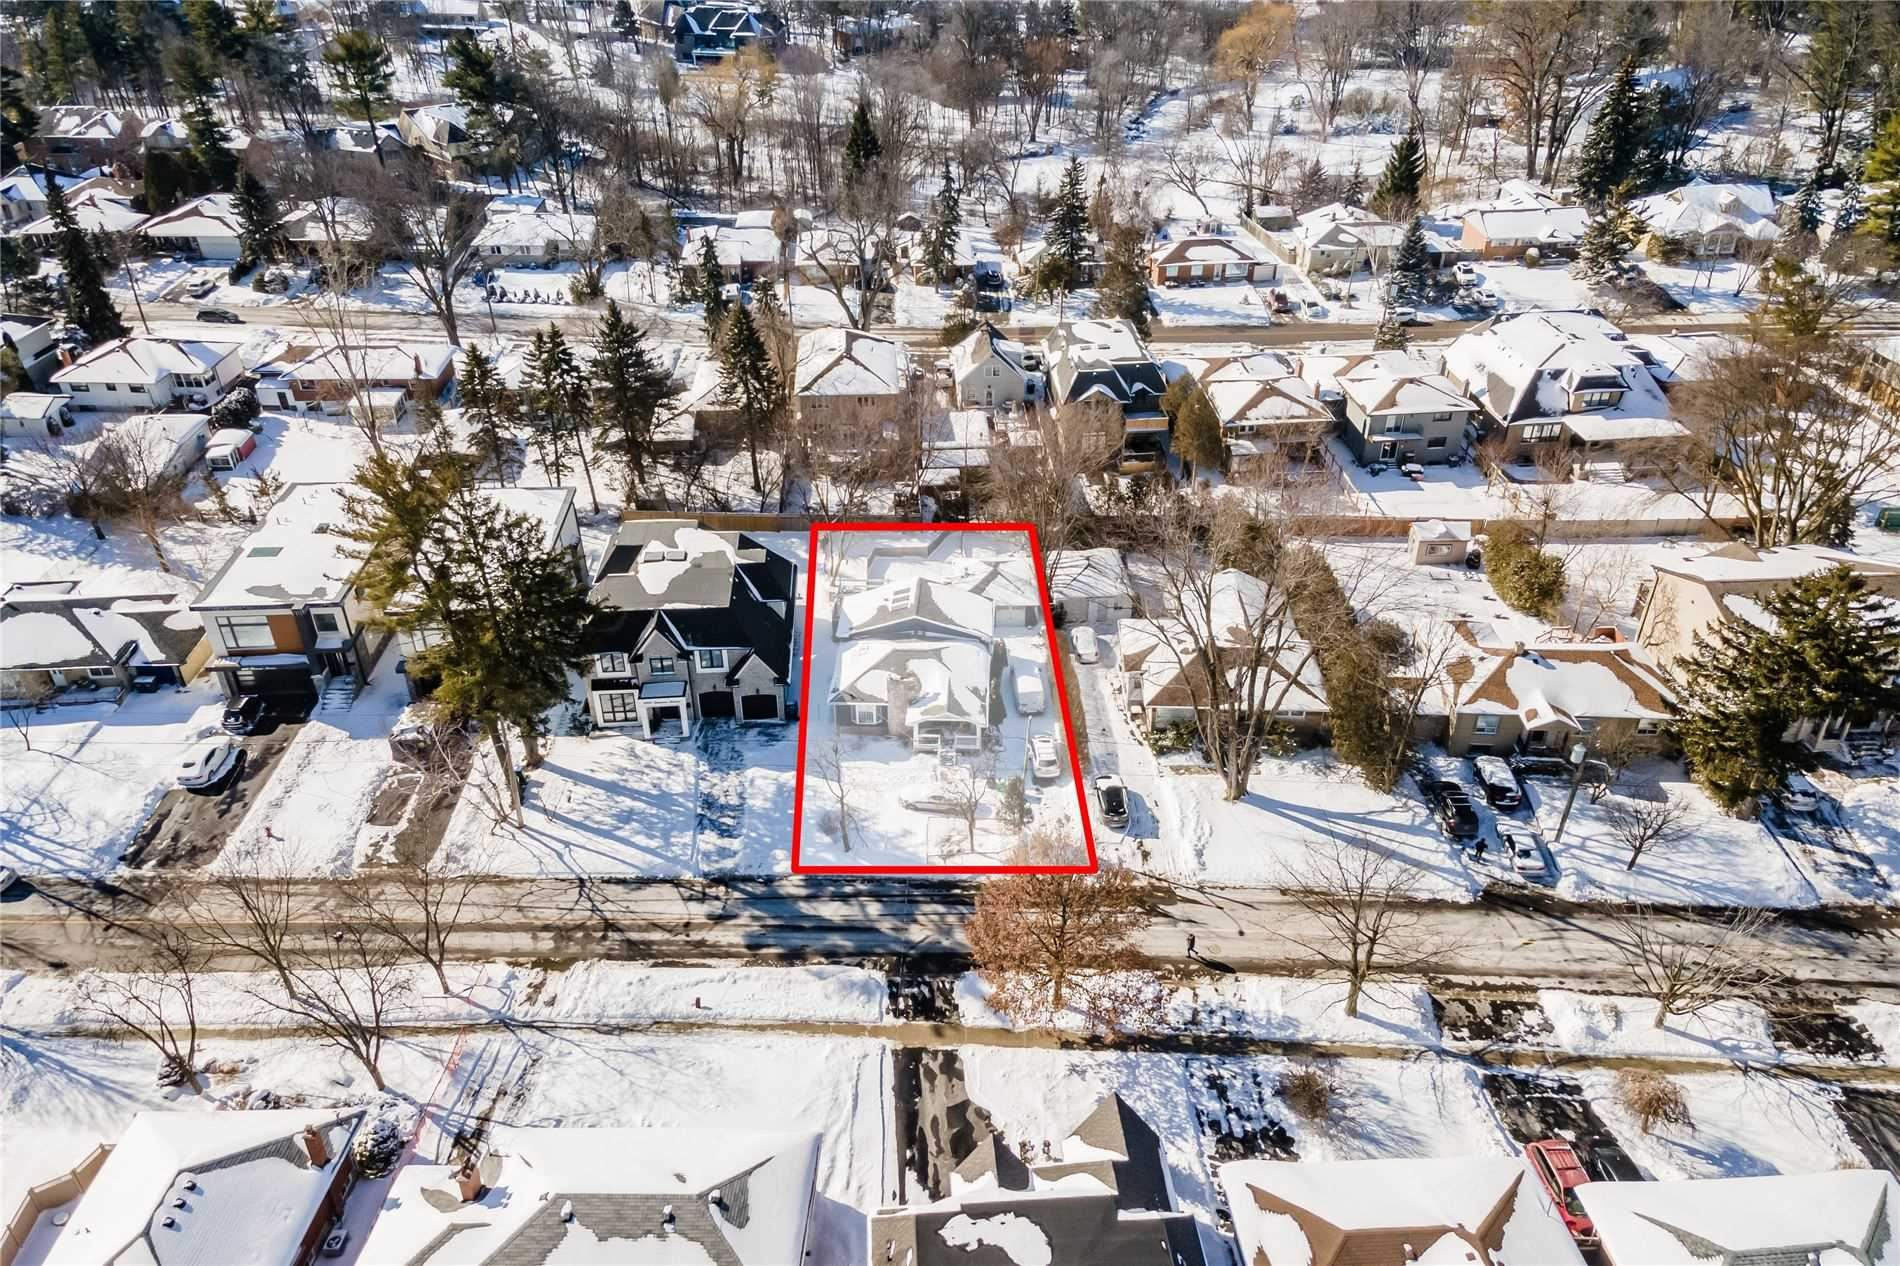 1372 Kenmuir Ave, Mississauga, ON L5G4B4 - MLS#: W5122023